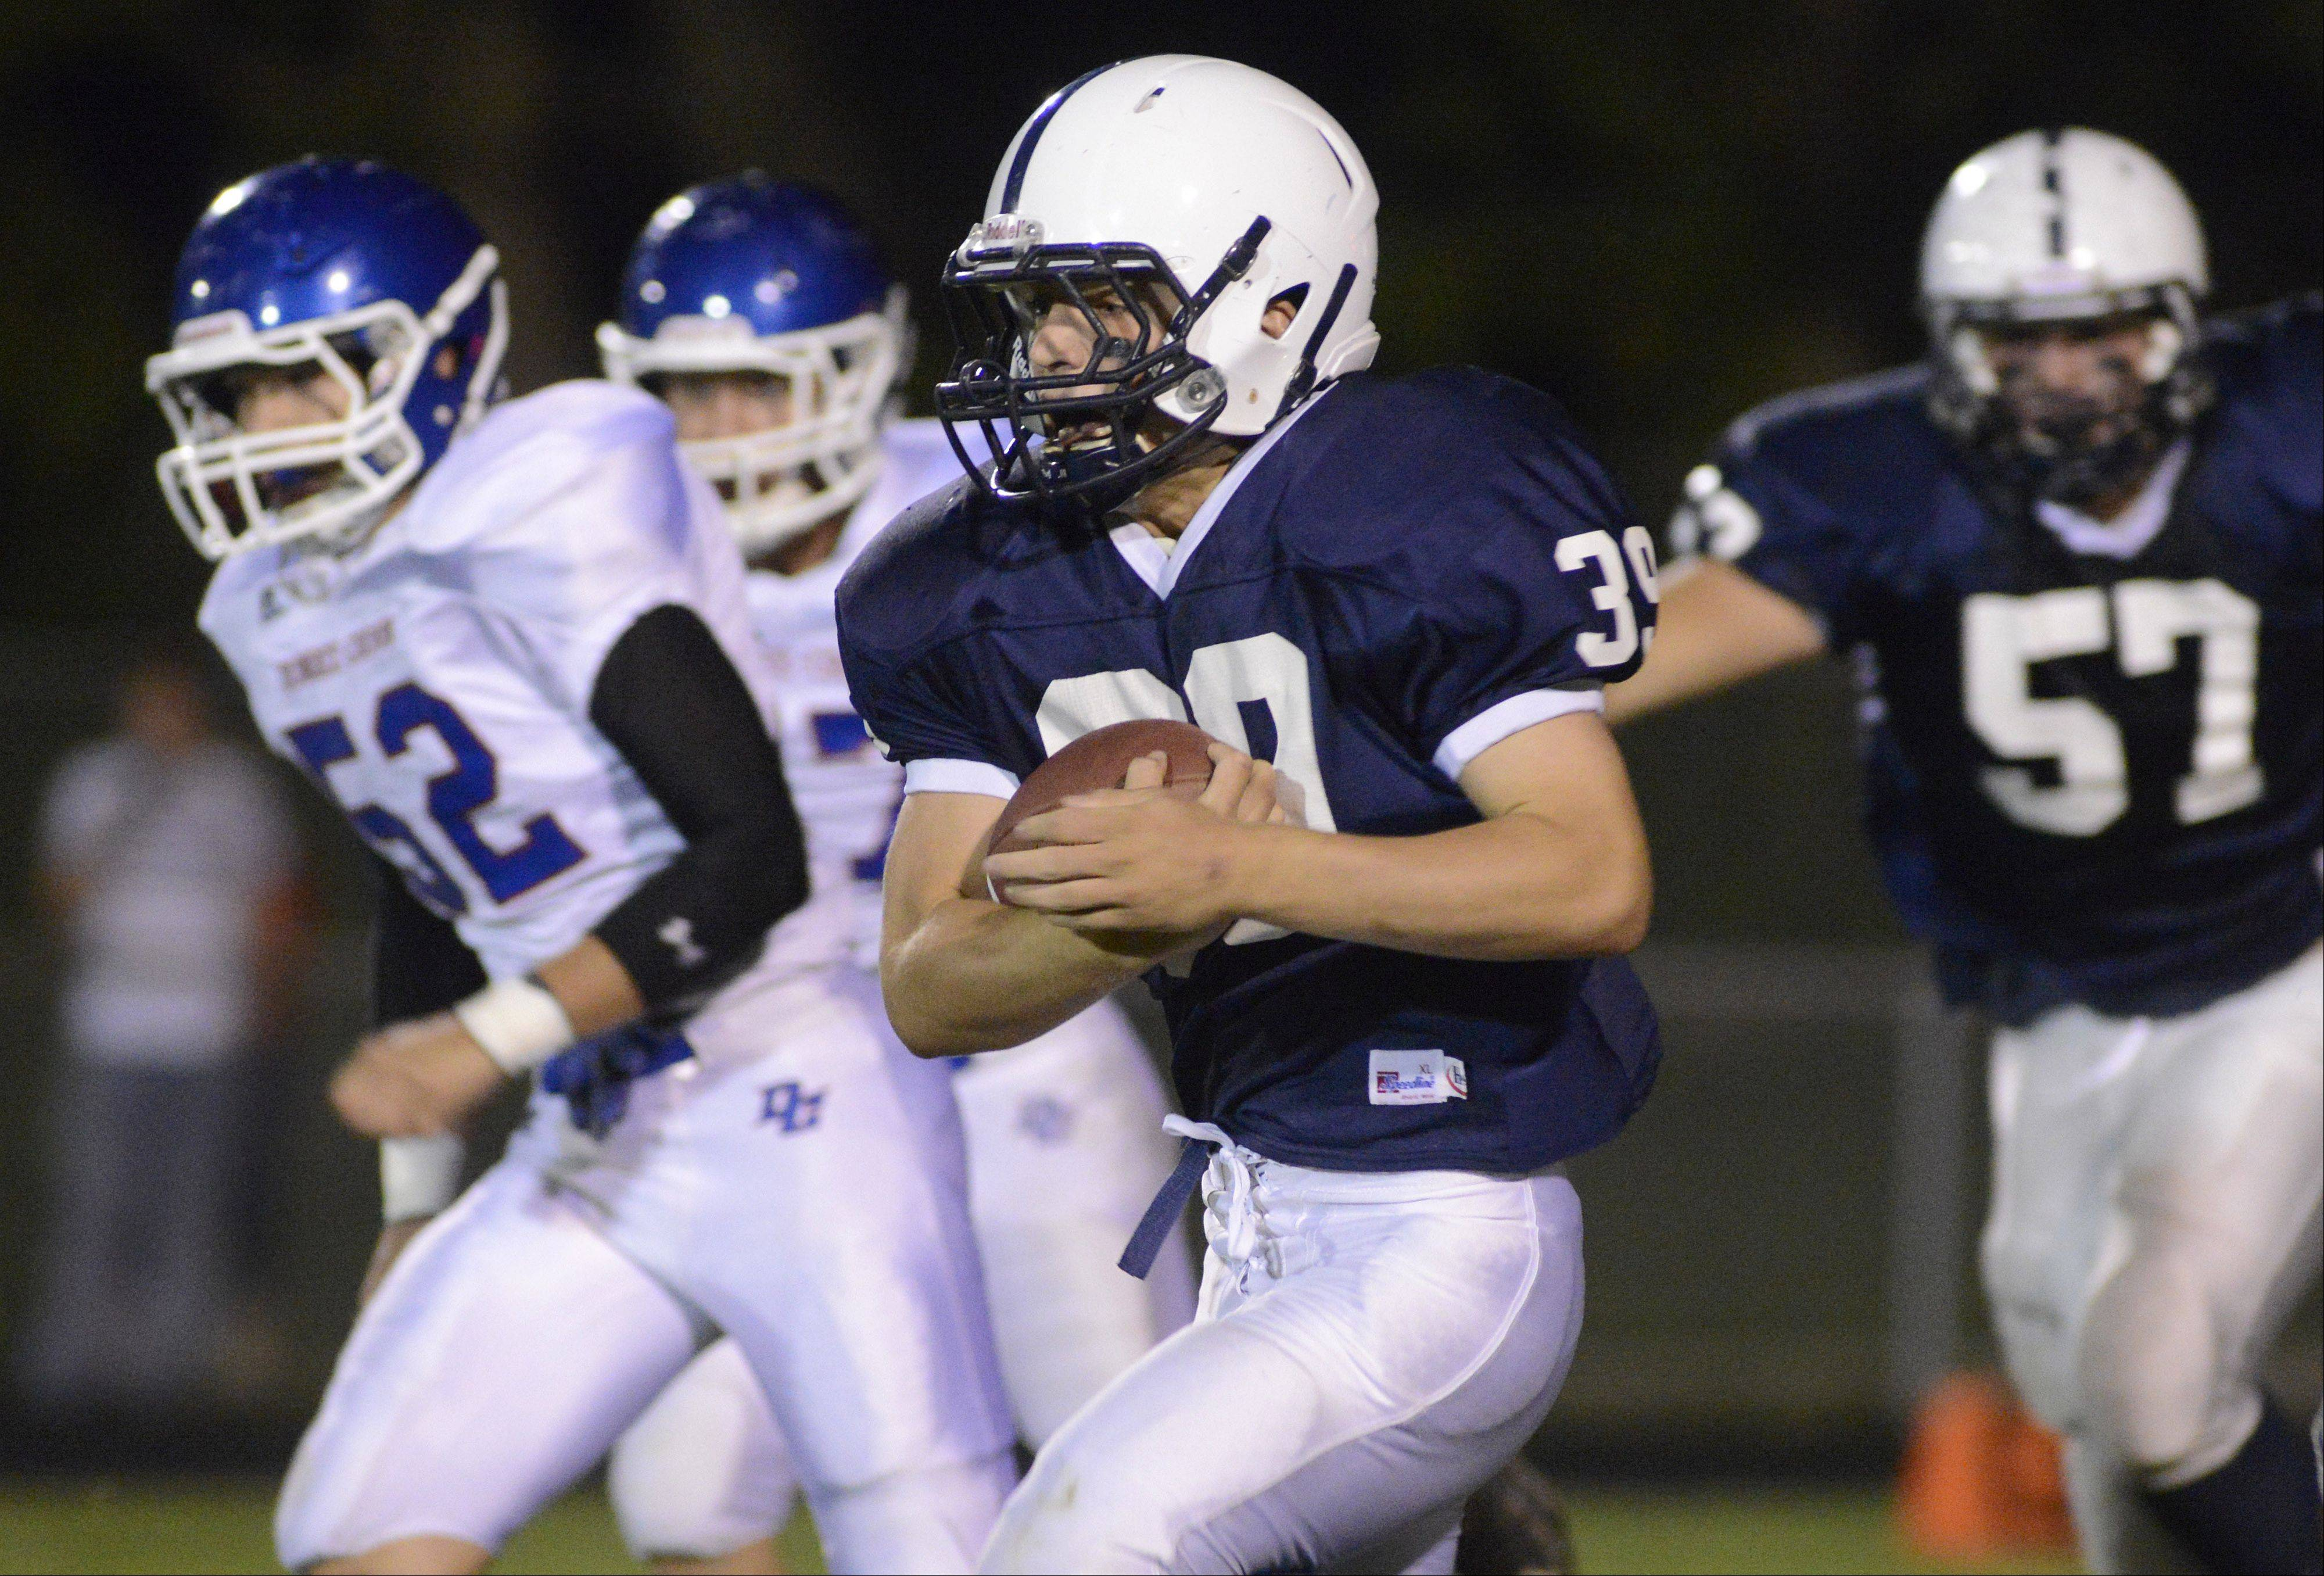 Cary-Grove's Tyler Pennington makes his way down the field in the first quarter against Dundee-Crown on Friday in Cary.